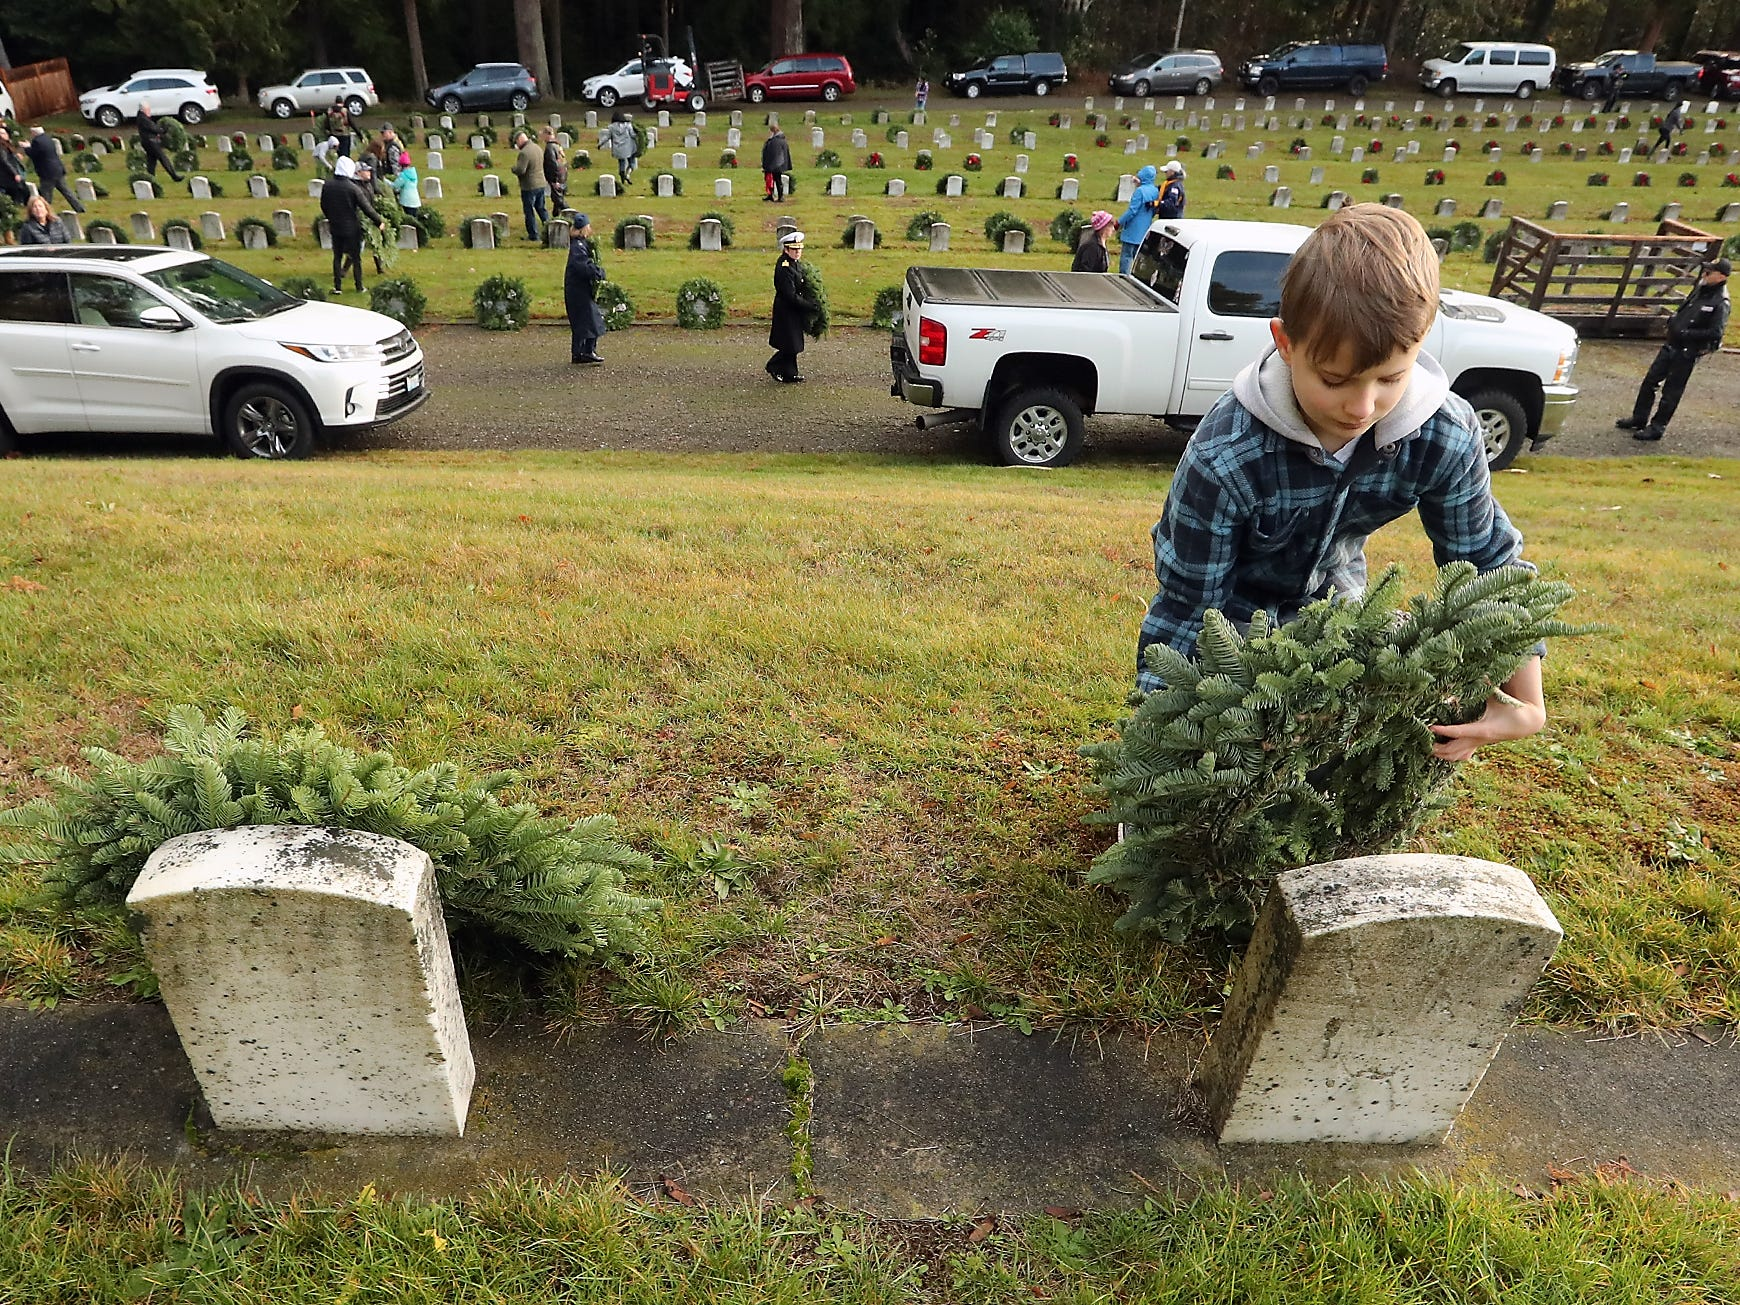 Elijah Rossiter, 9, places a wreath against a headstone during the Wreaths Across America event at the Washington Veterans Home Cemetery in Port Orchard on Saturday, December 15, 2018.